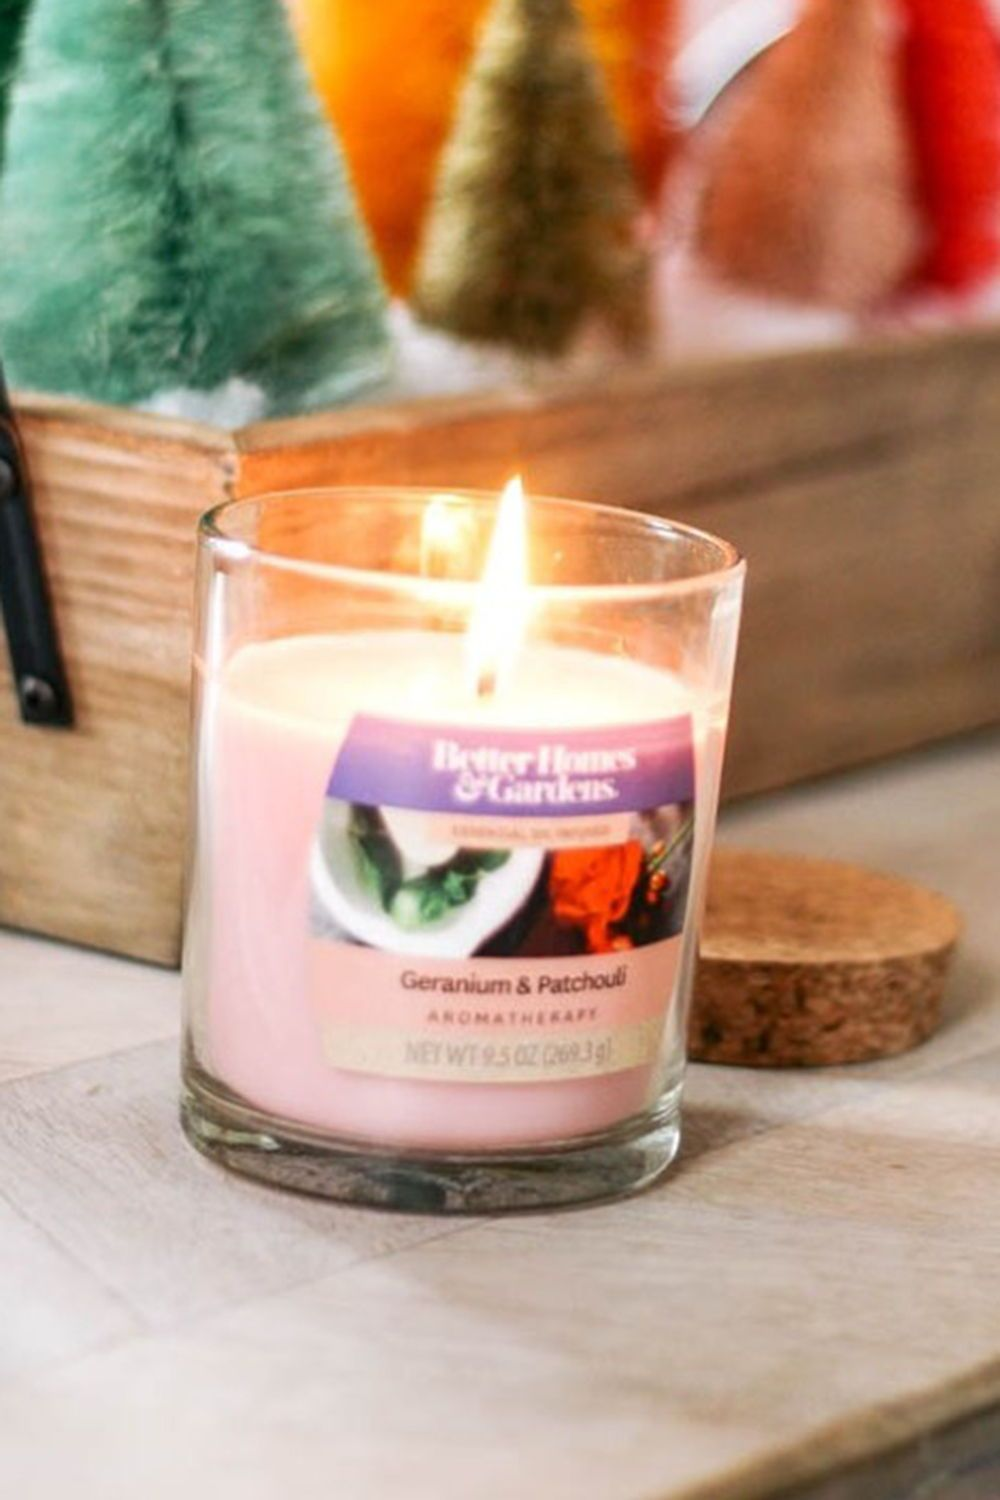 Aromatherapy Jar Candle. Via At Home with Ashley candle